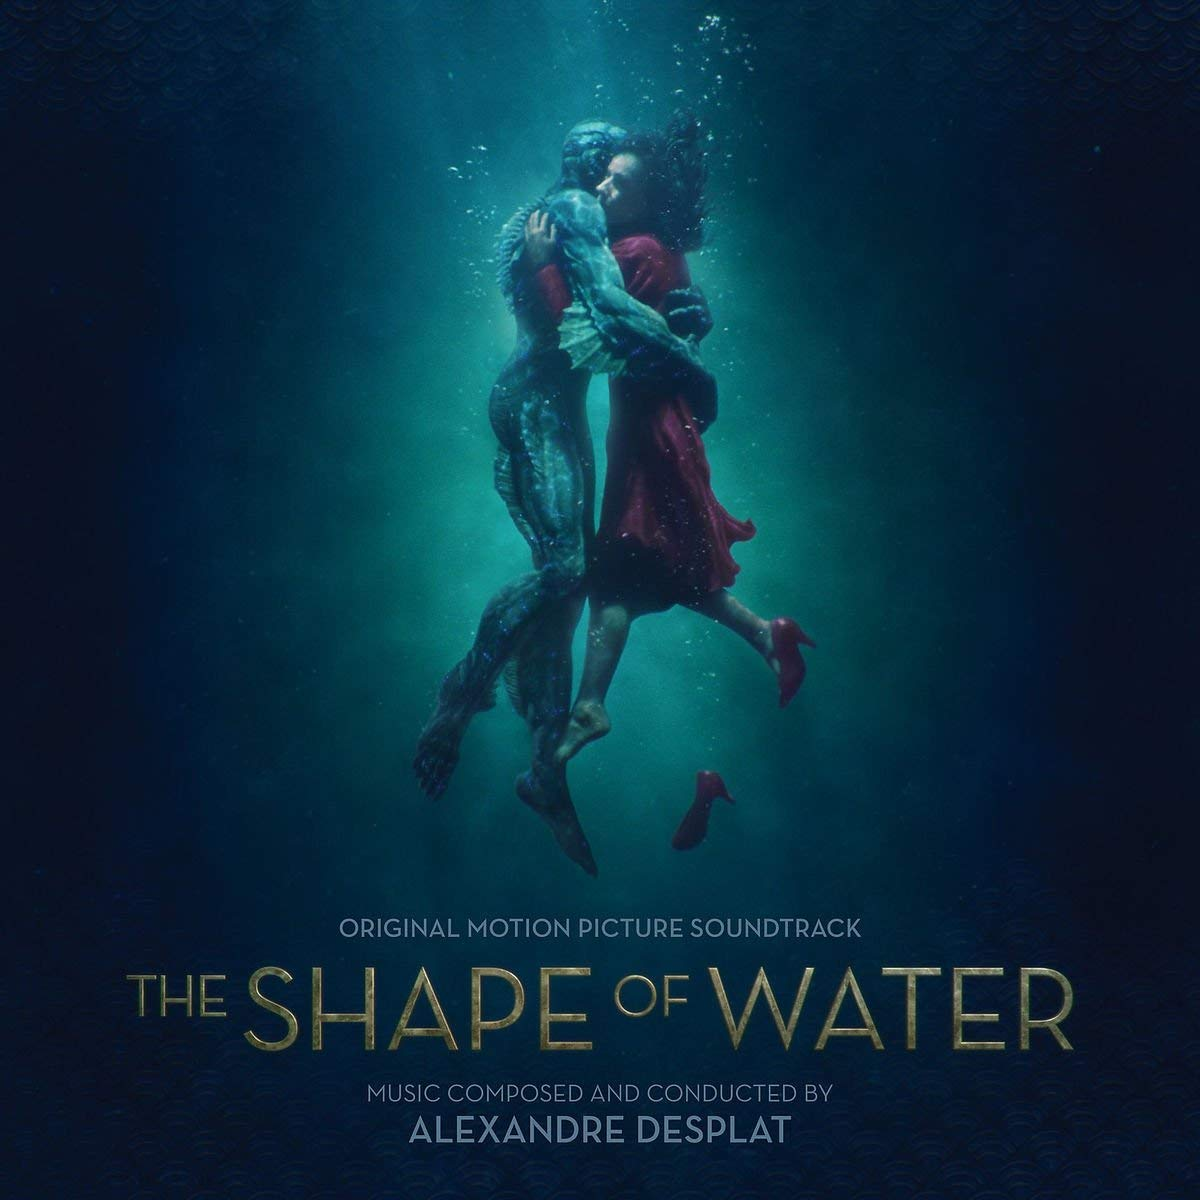 The Shape Of Water. Original Motion Picture Soundtrack (LP) butch tavares adi armour the o jays brawl in cell block 99 original motion picture soundtrack lp